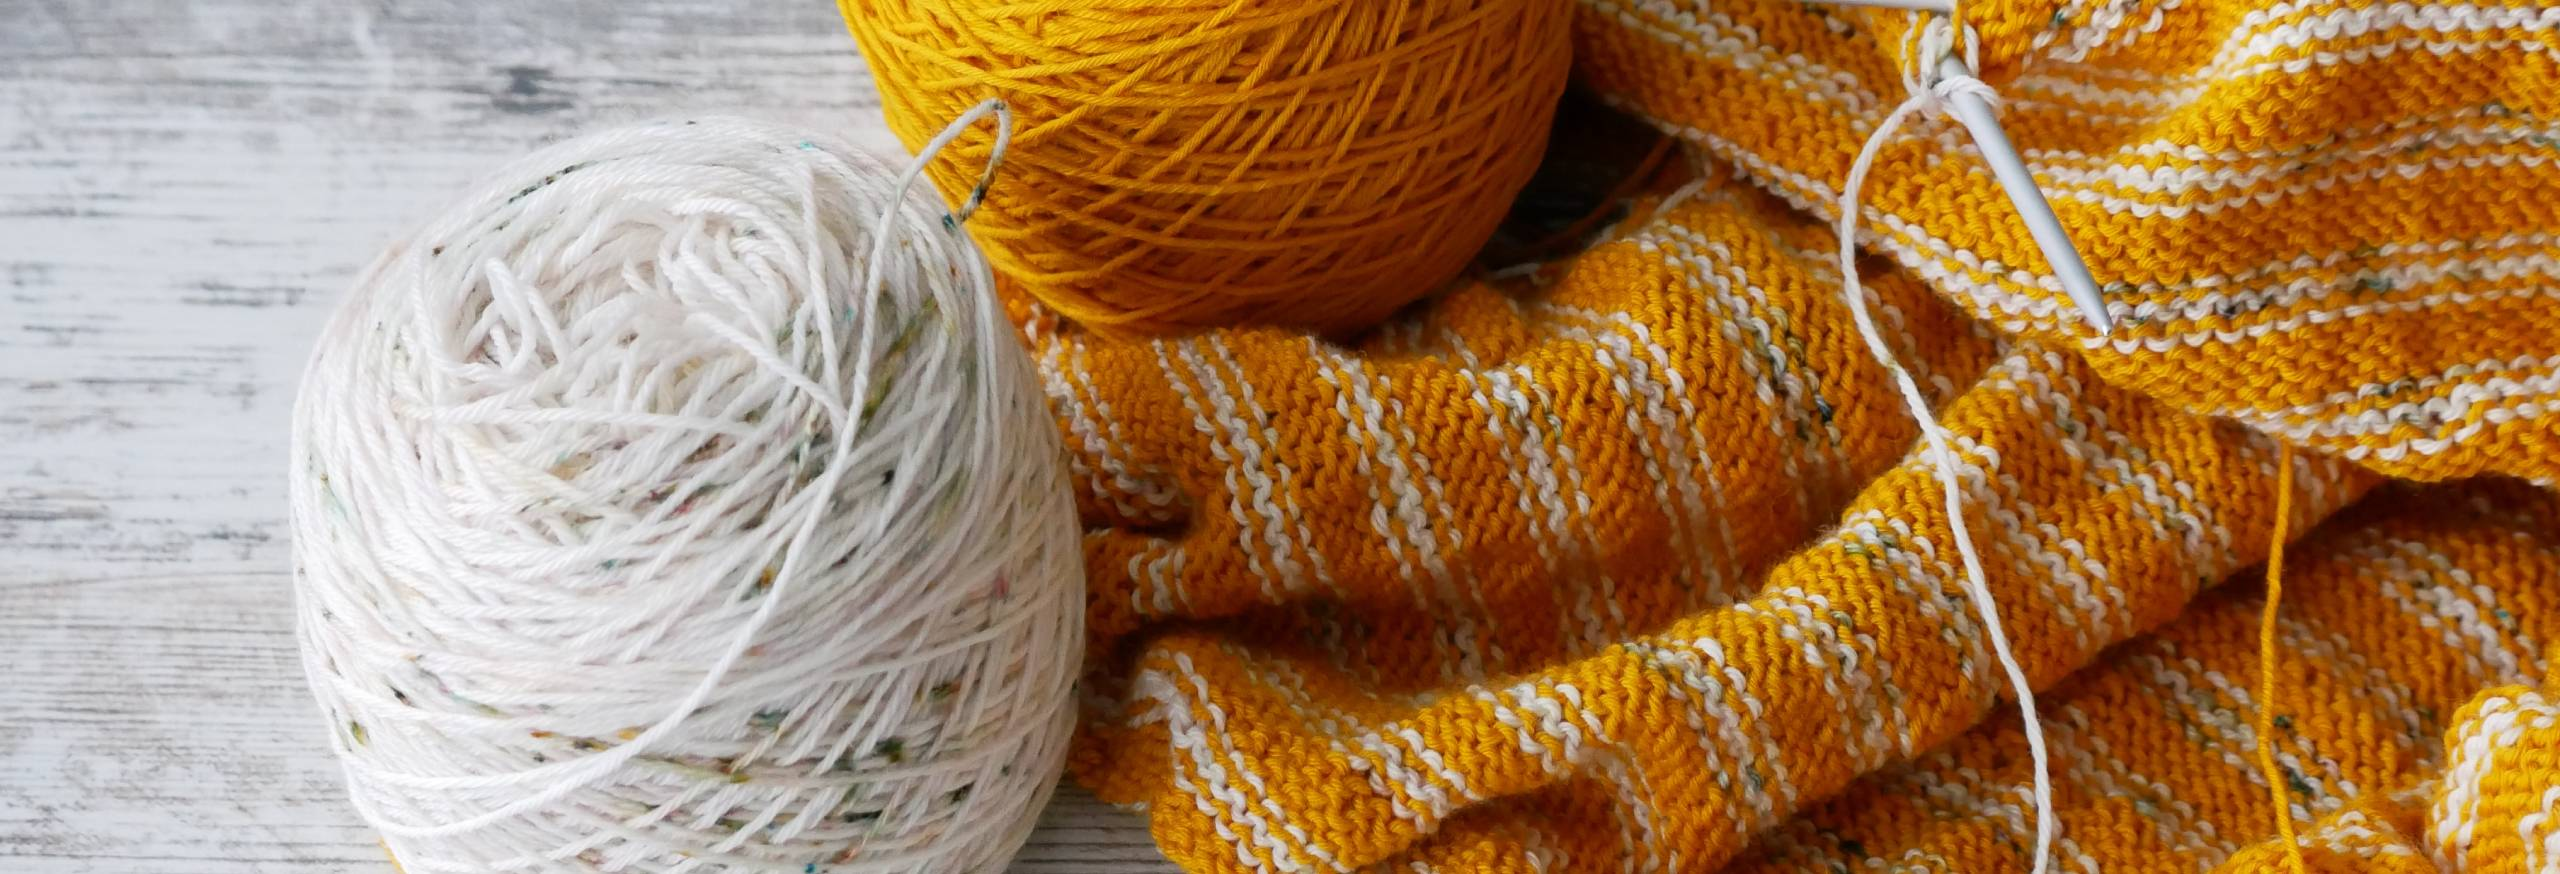 Golden Yellow and White Speckled yarn sits next to a striped knitting project